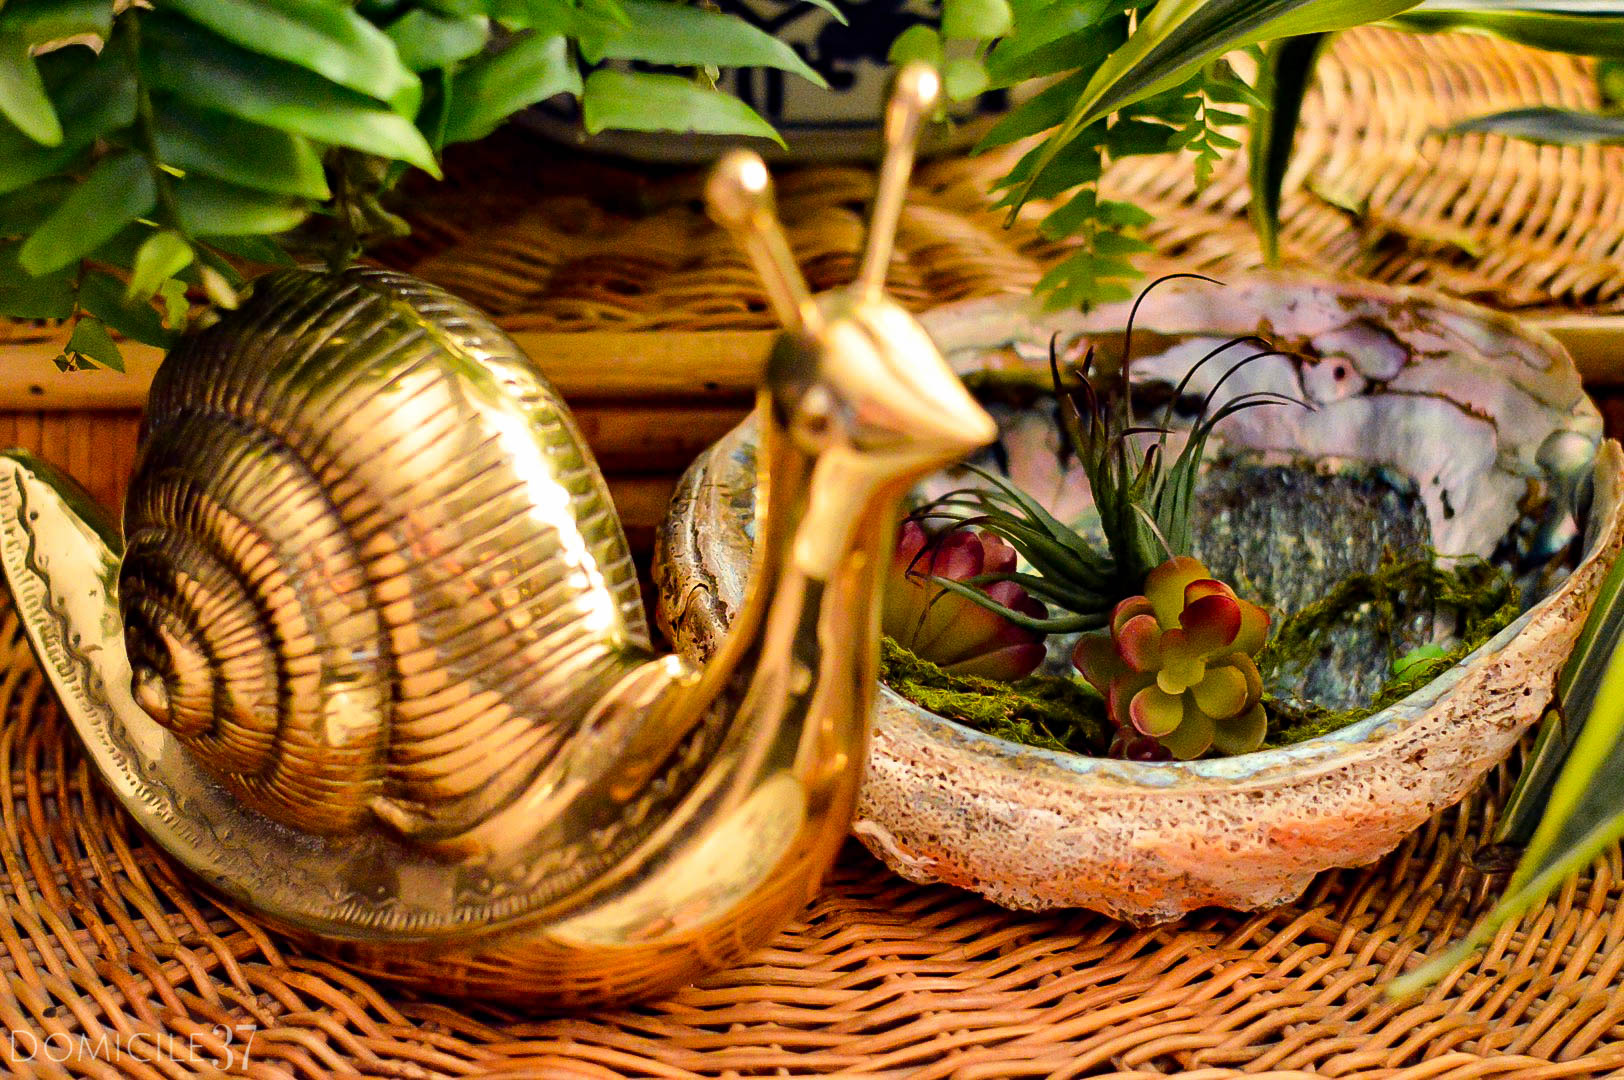 Brass snail | Faux succulent planter | Plant styling | Mixing faux and real plants